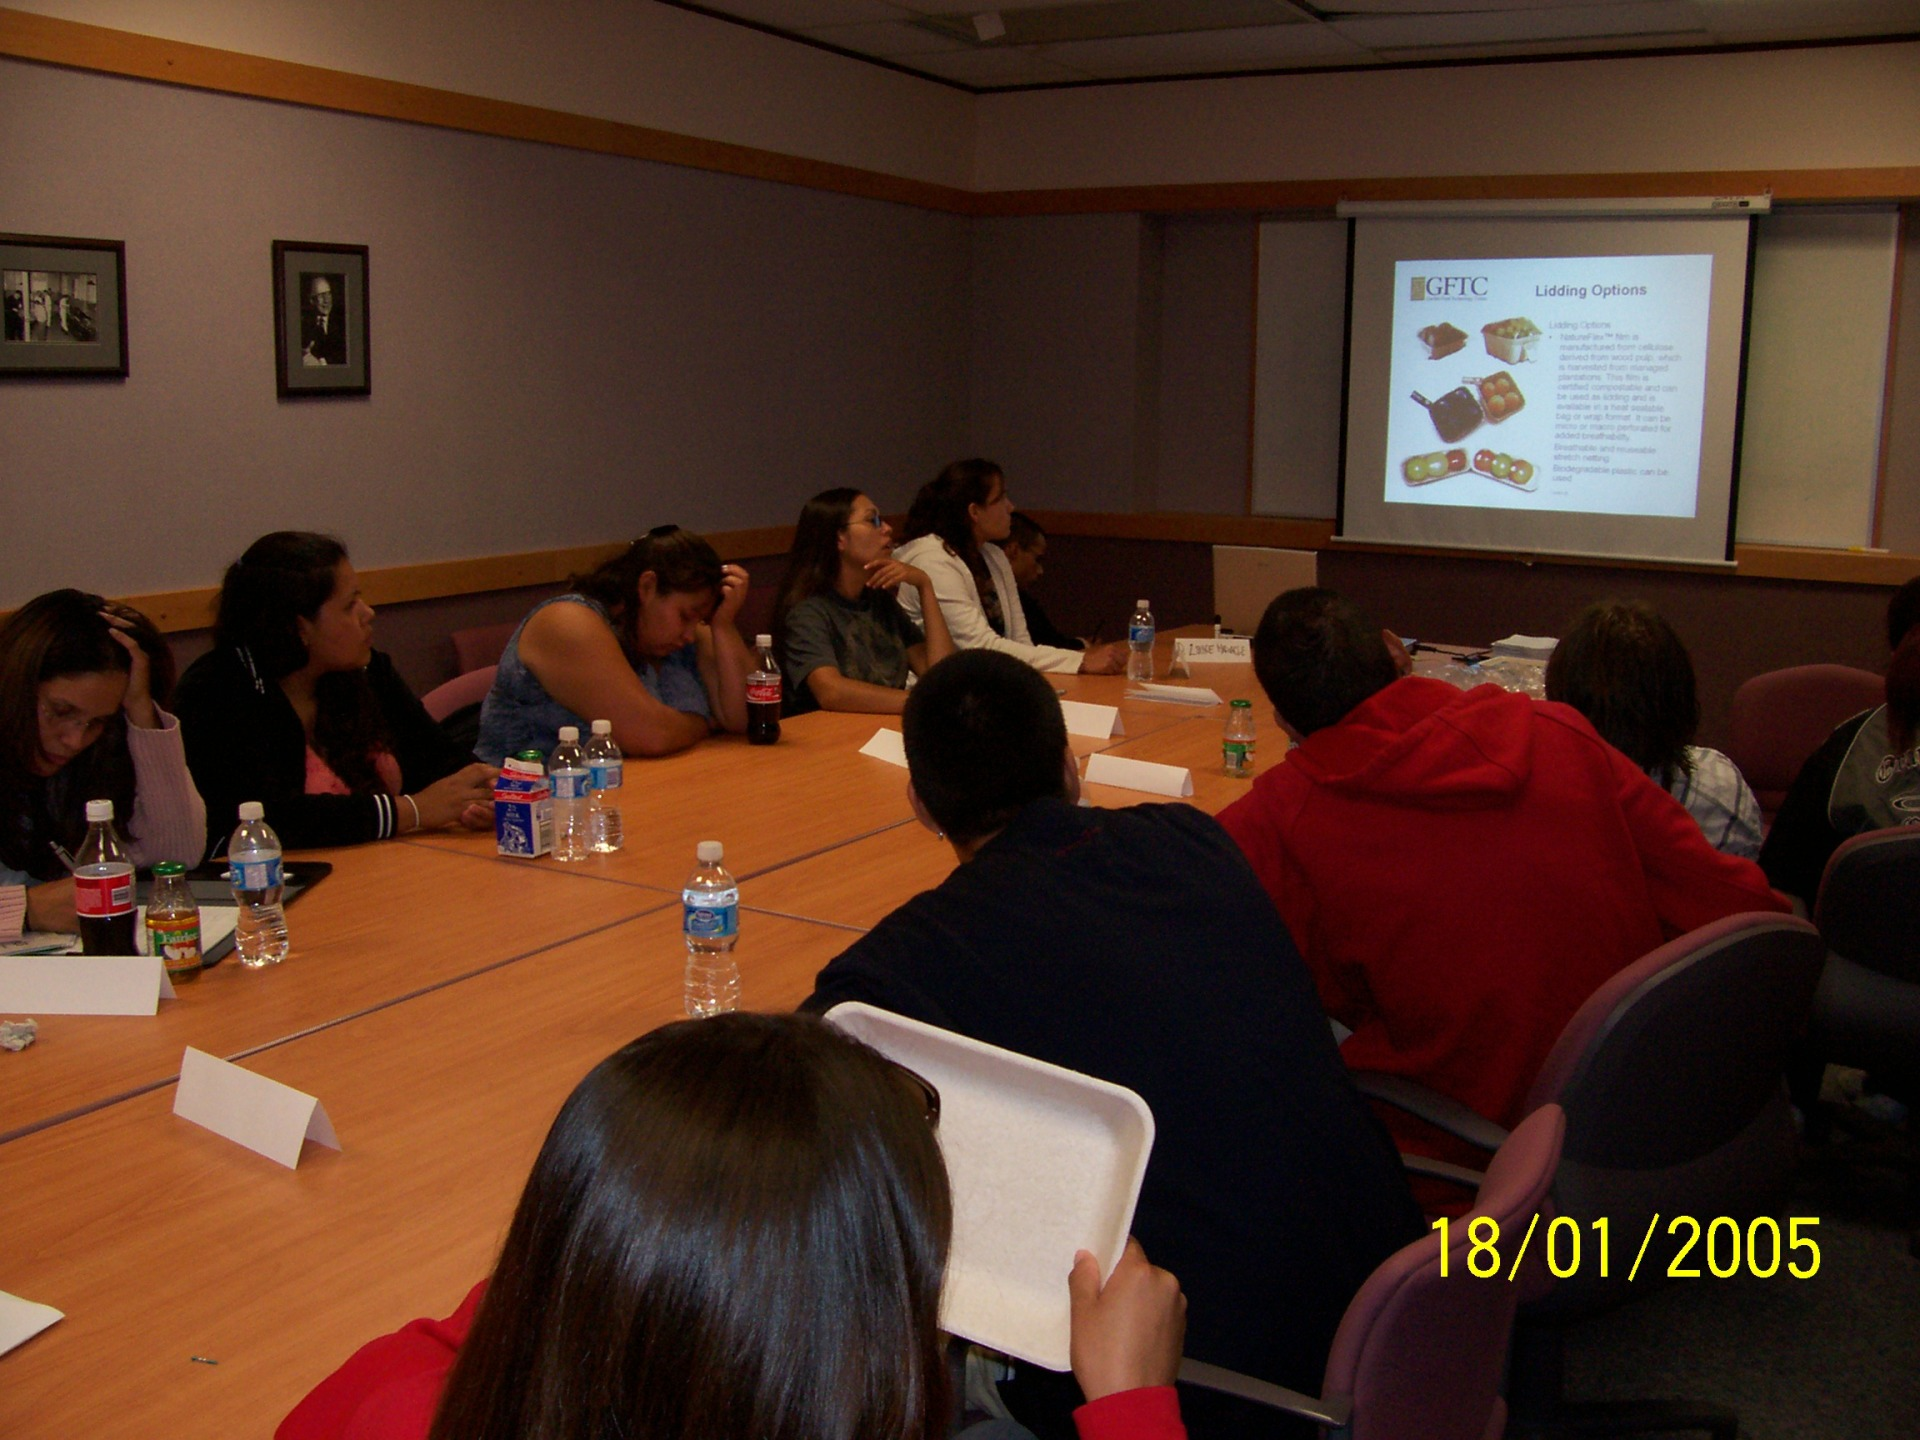 Guelph Food Technology Centre Workshop presentation picture